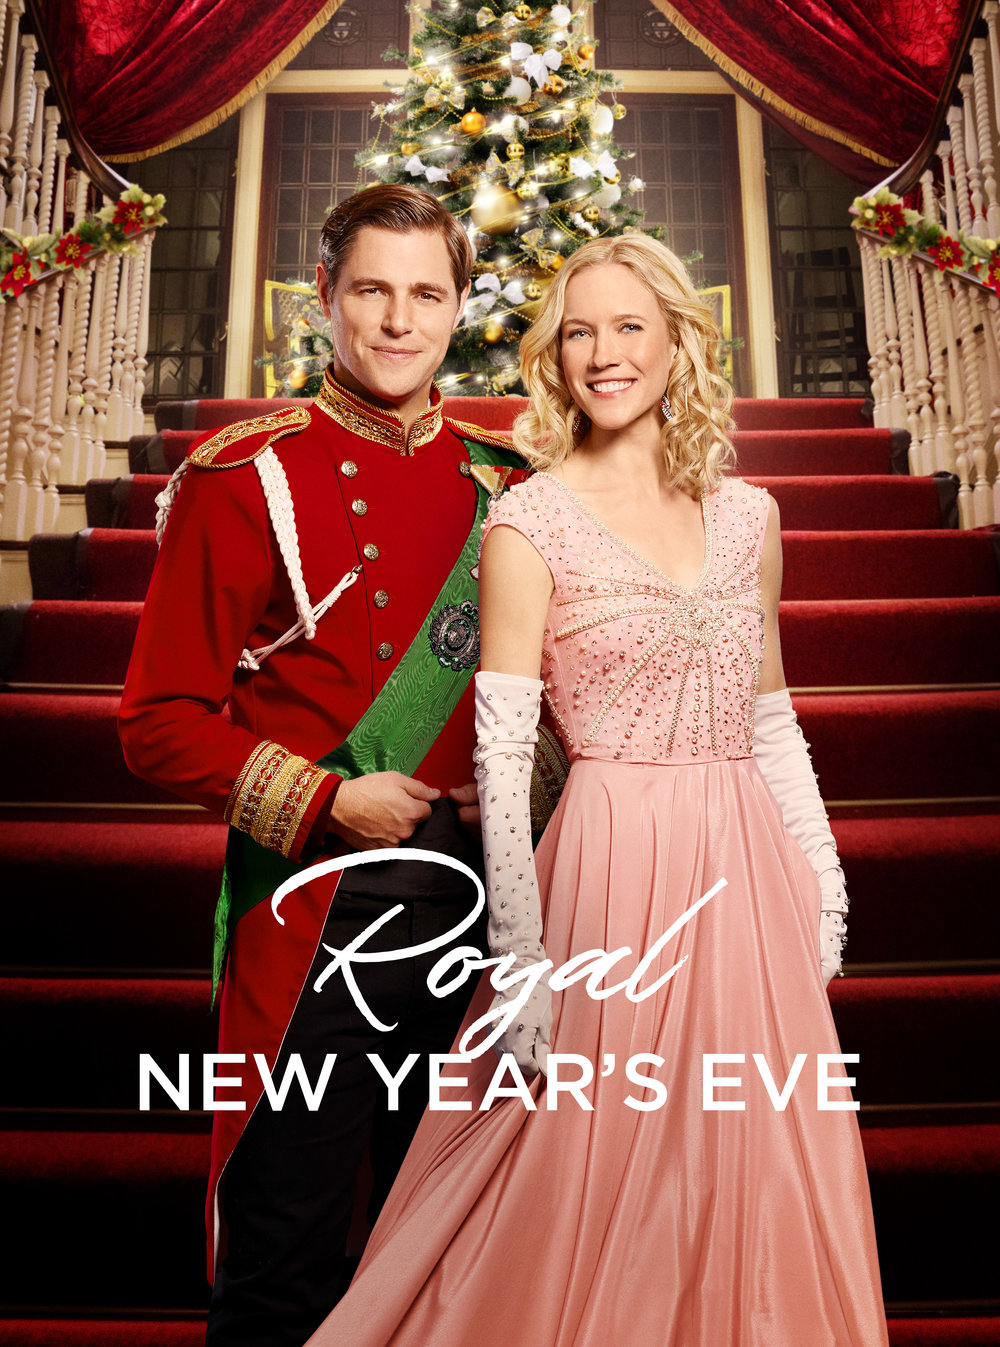 ROYAL NEW YEAR'S EVEN